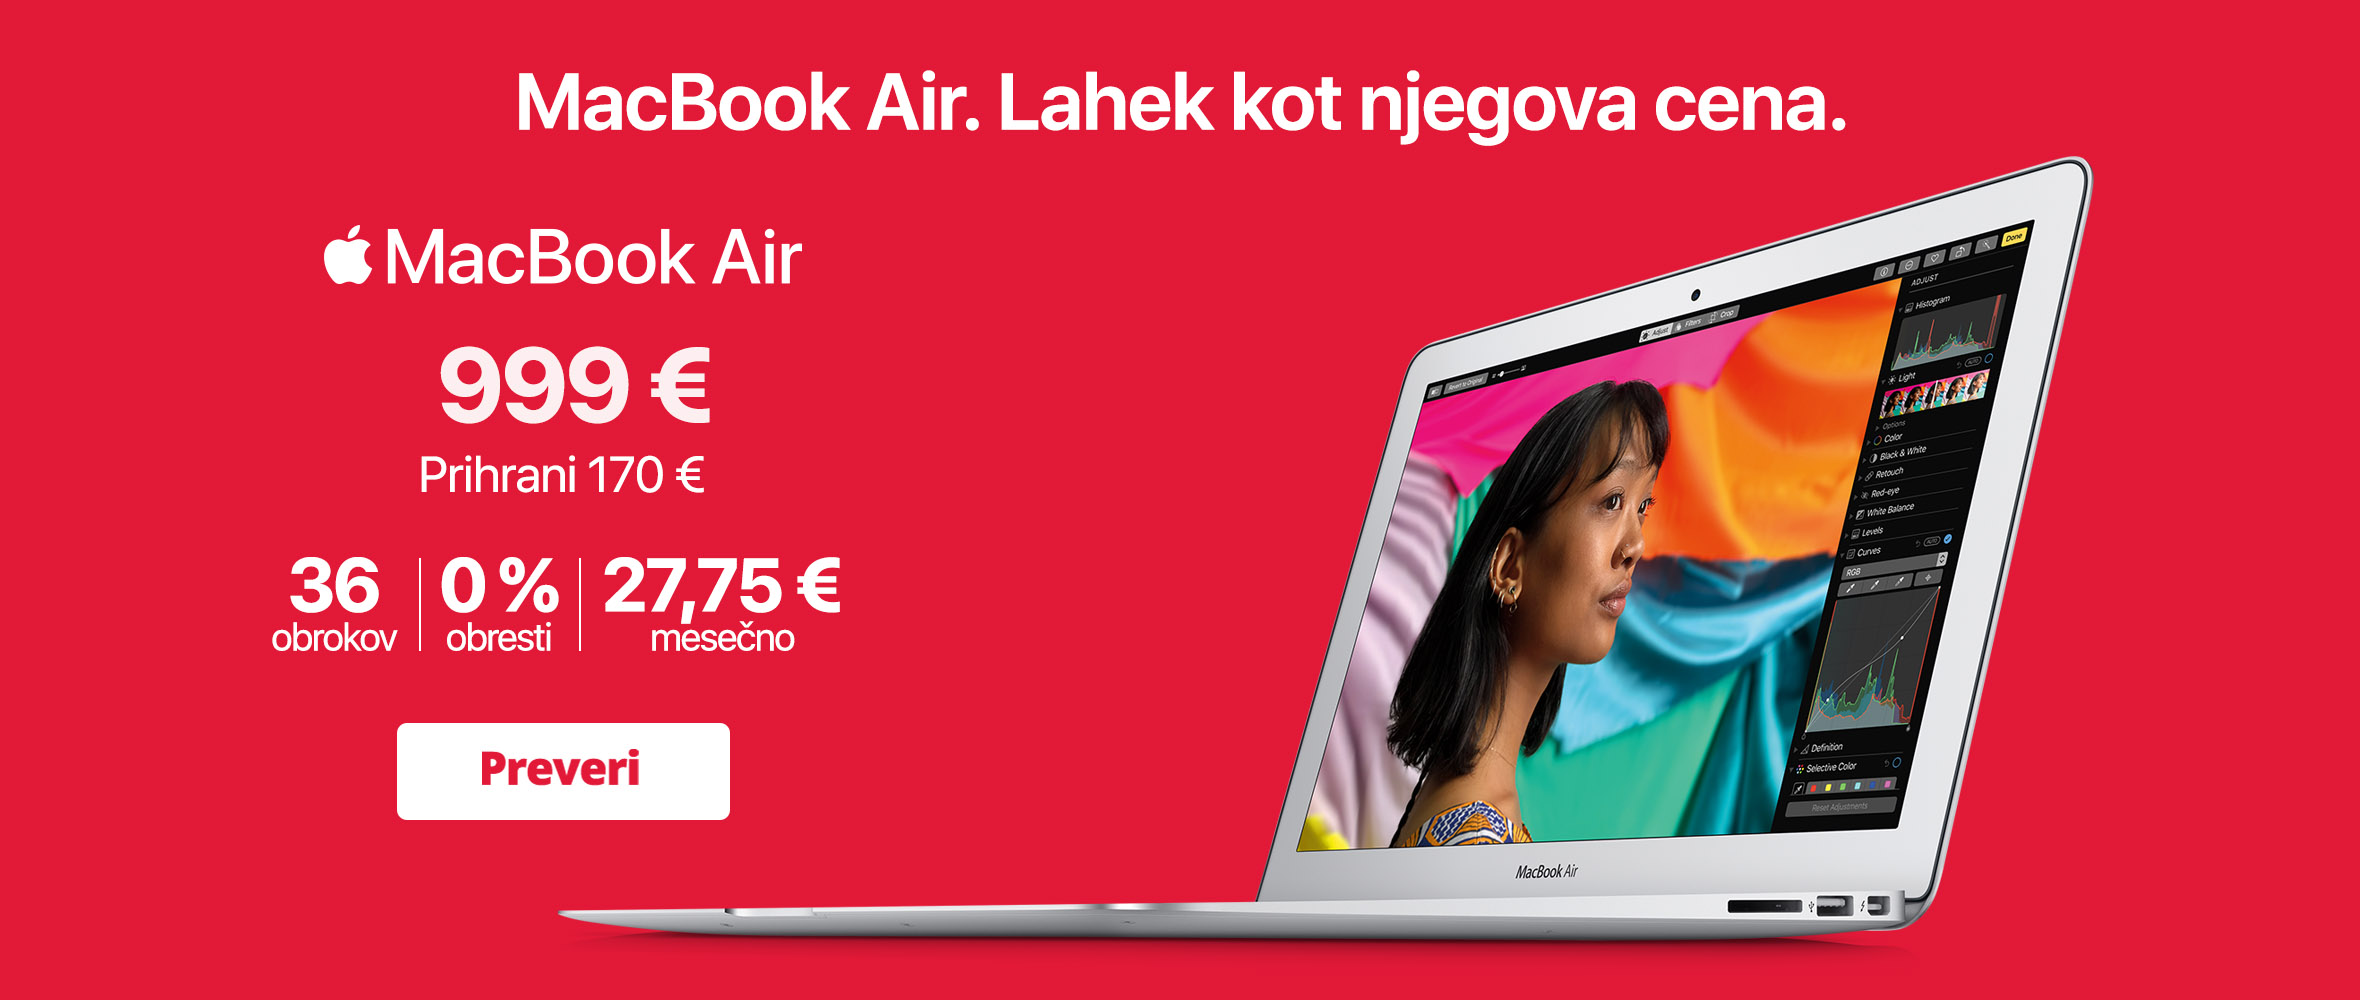 SI - MacBook Air 999